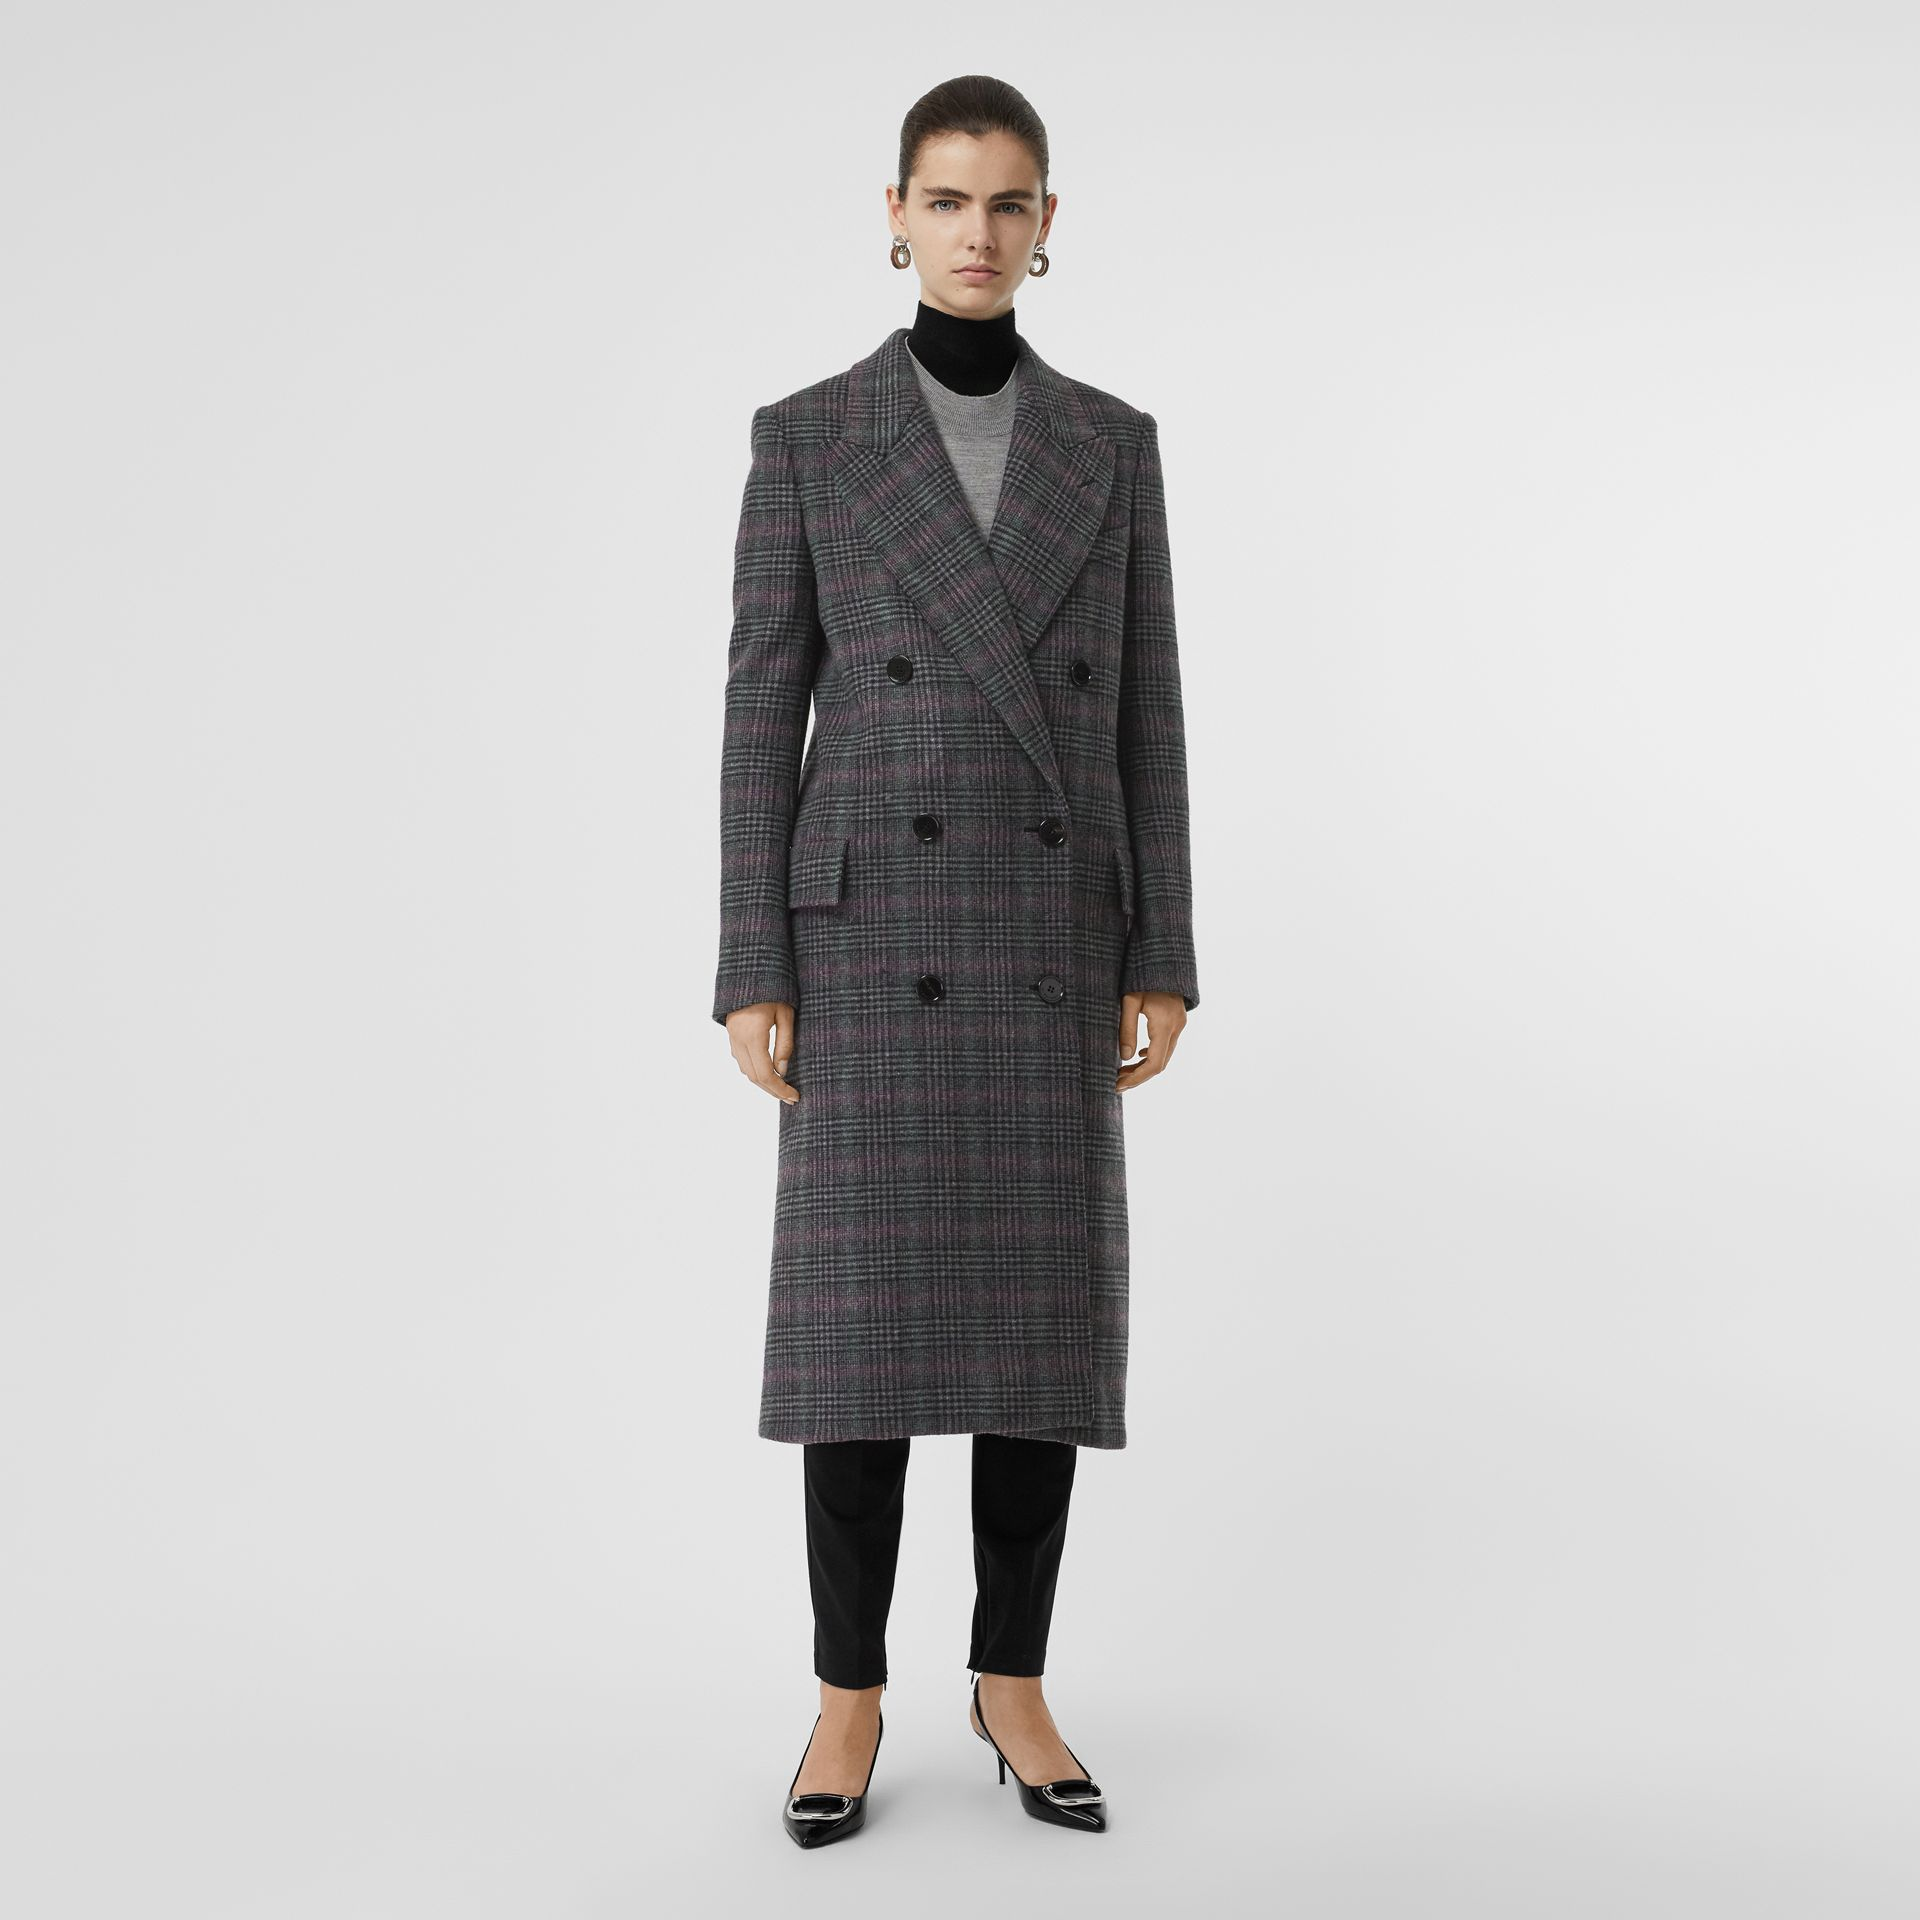 Prince of Wales Check Wool Tailored Coat in Charcoal - Women | Burberry Canada - gallery image 5